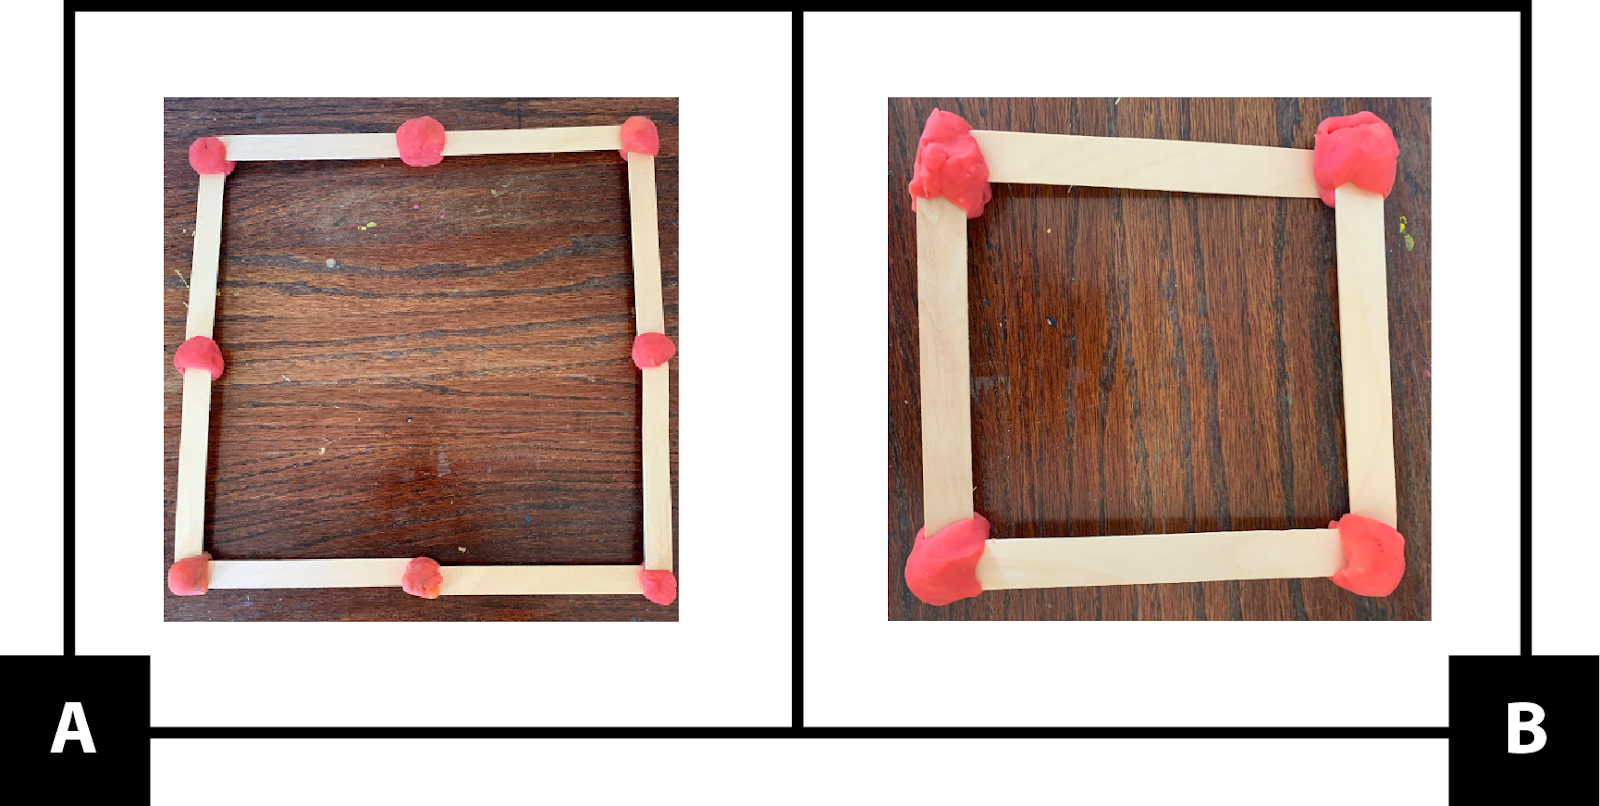 A. shows a square made with 8 crafts sticks. Each side is 2 craft sticks long. Clay holds the sticks together. B. shows a square made with 4 crafts sticks. Each side is 1 craft stick long. Clay holds the sticks together.